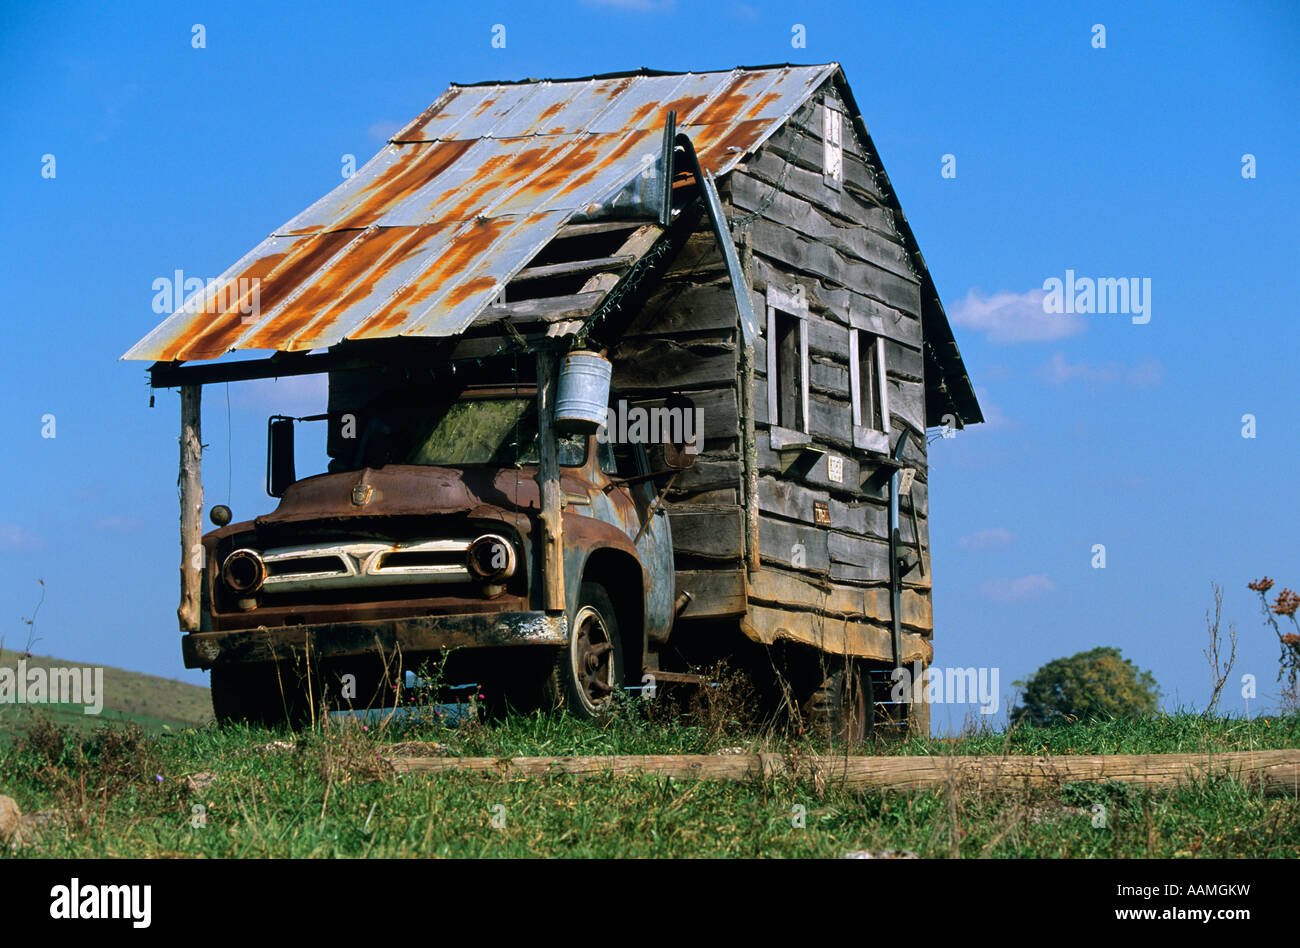 House Truck High Resolution Stock Photography And Images Alamy